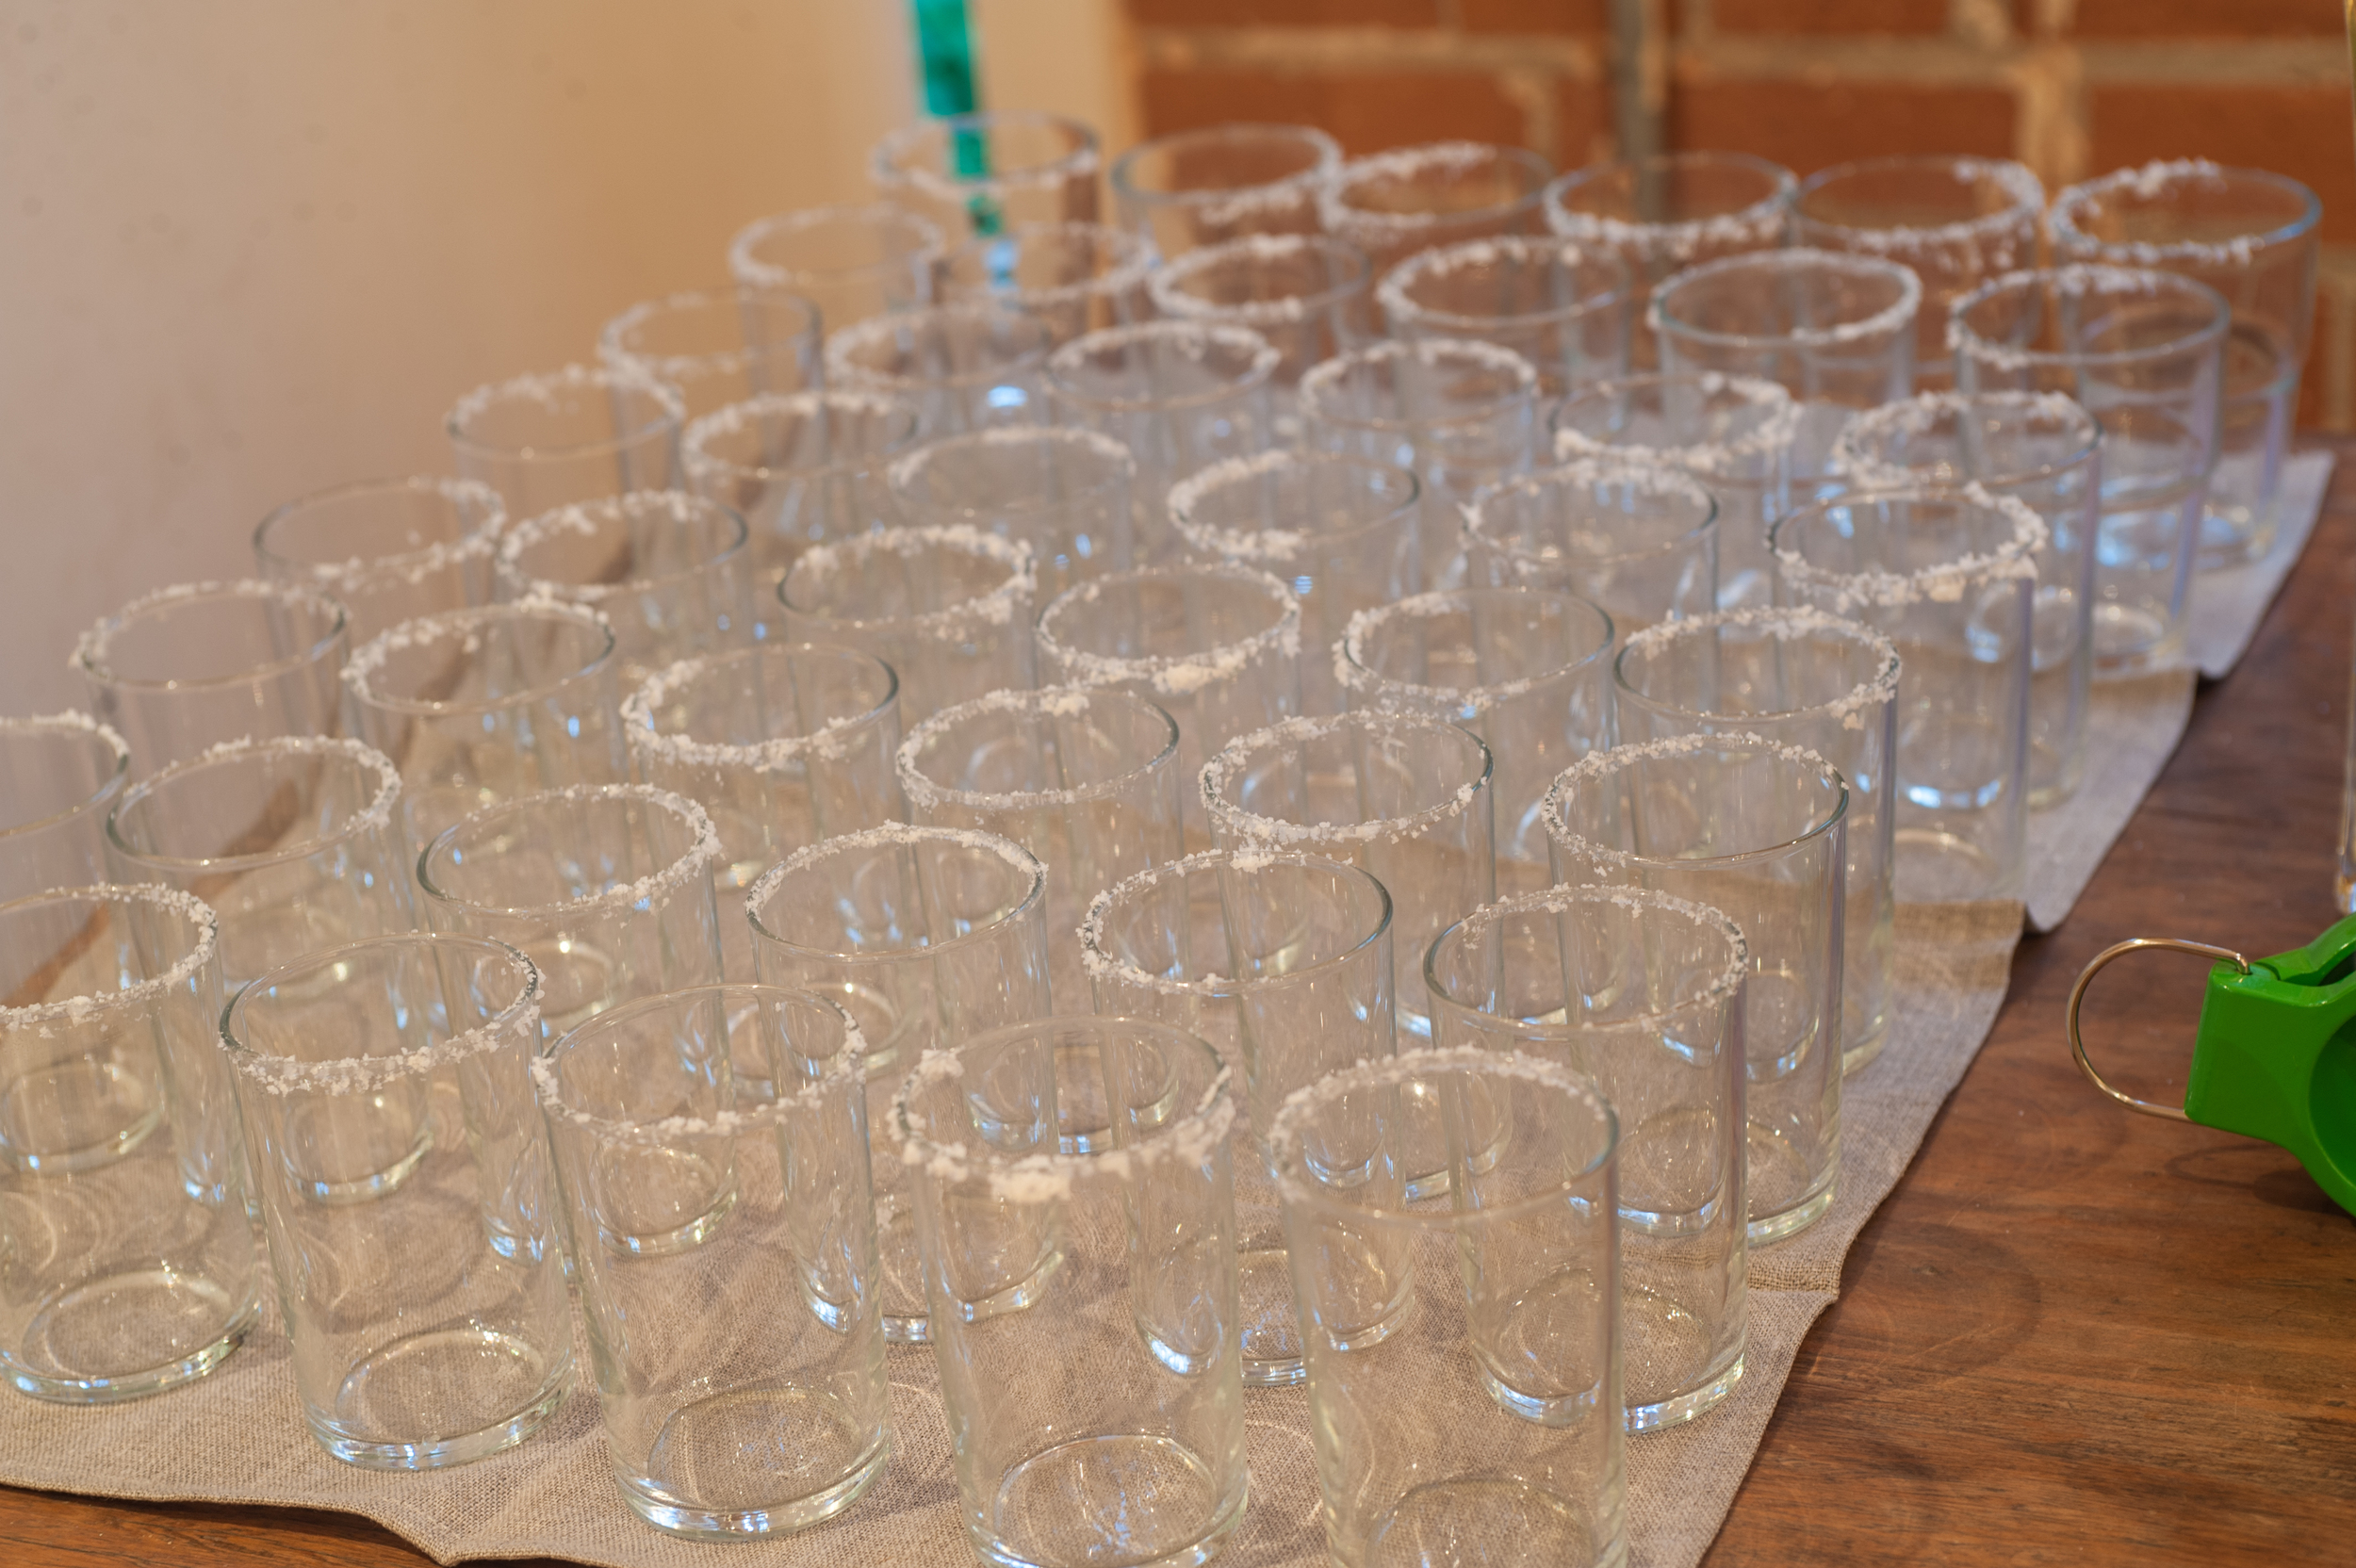 Sal de Margarita rimmed glasses for a party